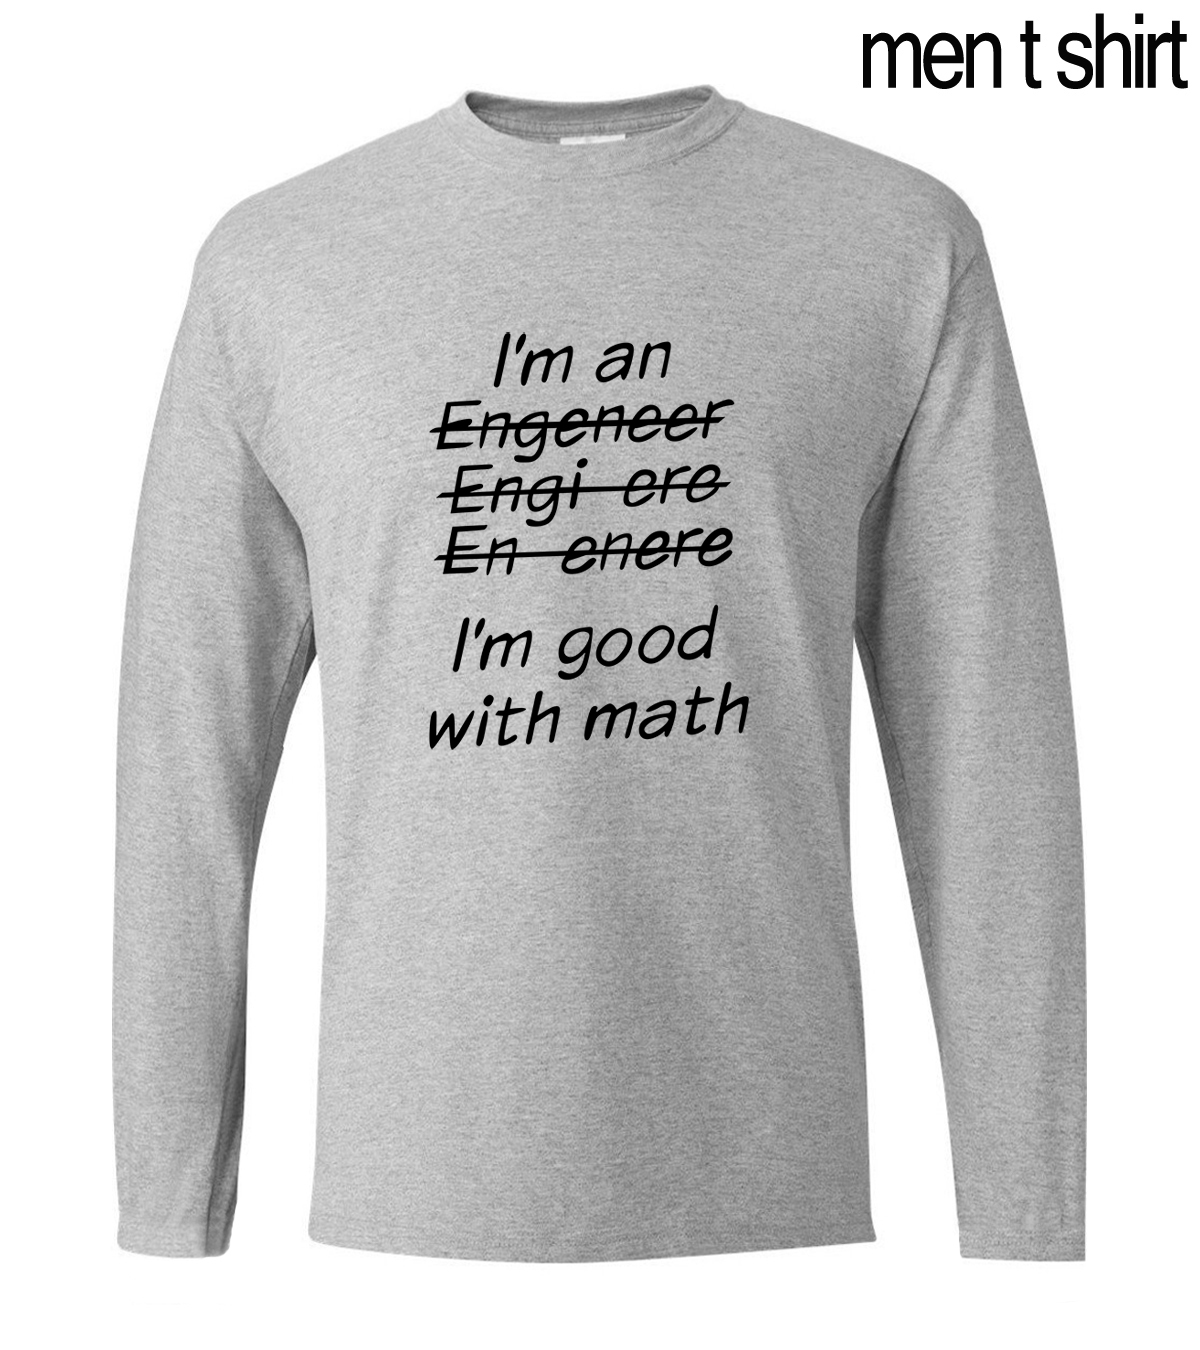 I Am An Engineer I'm Good With Math Letters Printed T-Shirts 2019 Hot Summer Long Sleeve Men's T-Shirt 100% Cotton Men Tops Tees